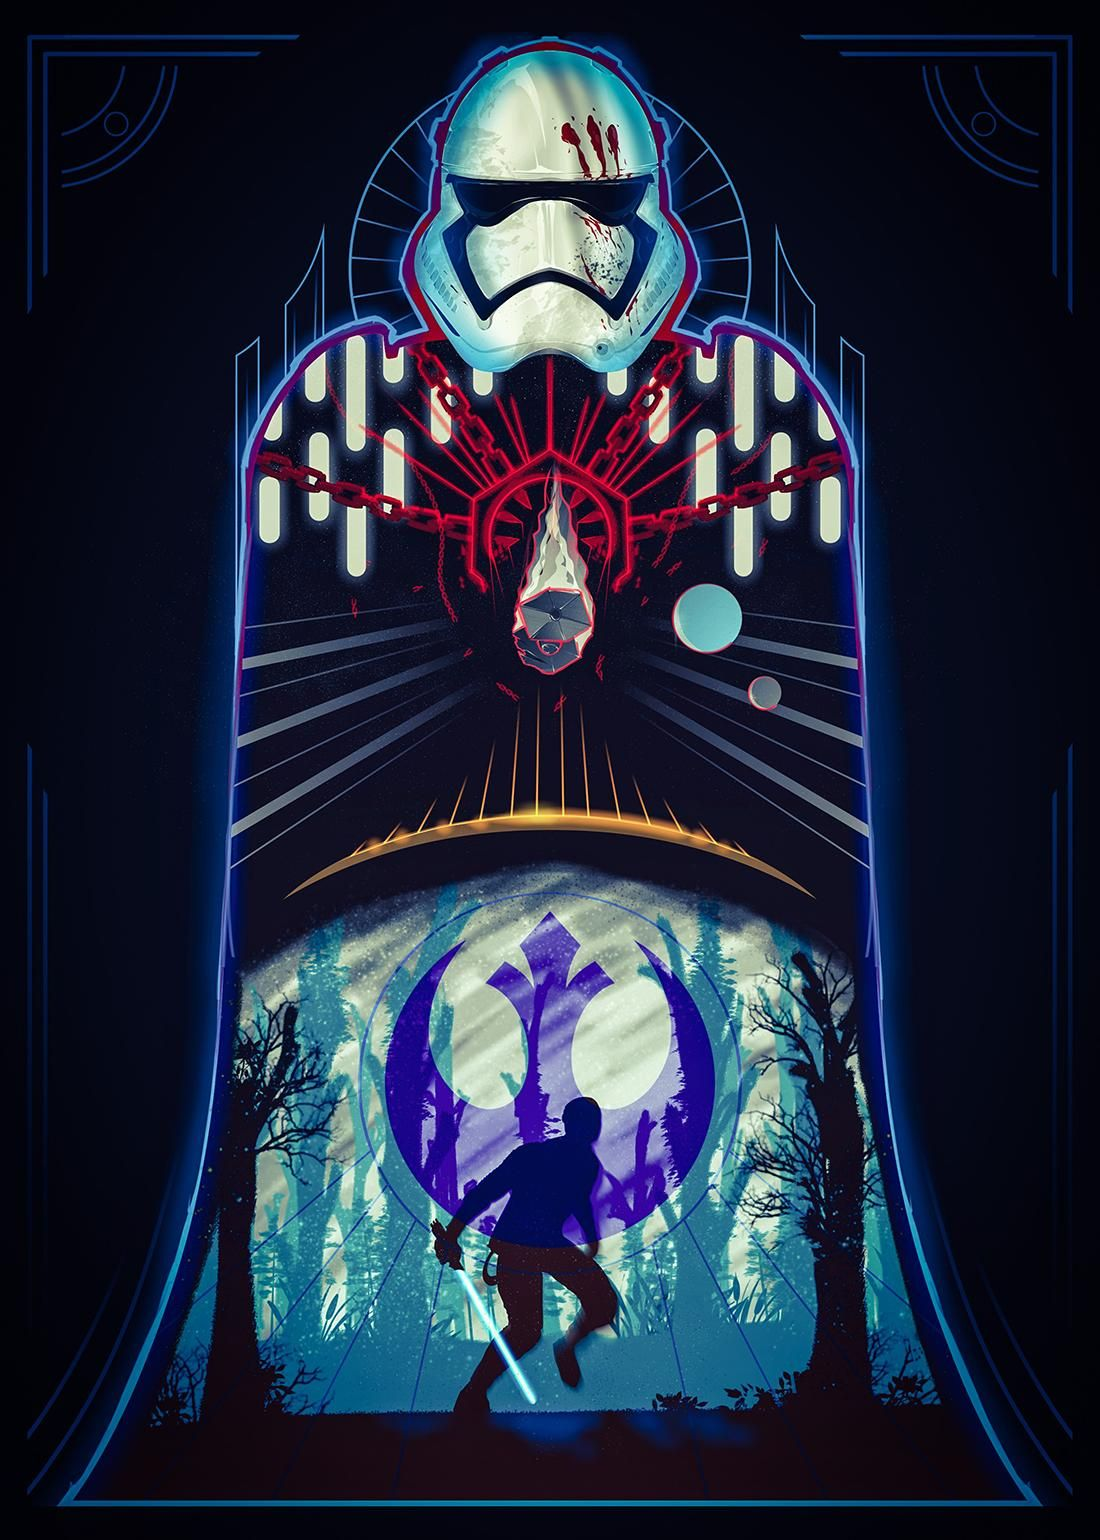 Star Wars Wallpaper Star Wars Art Star Wars Wallpaper Finn Star Wars